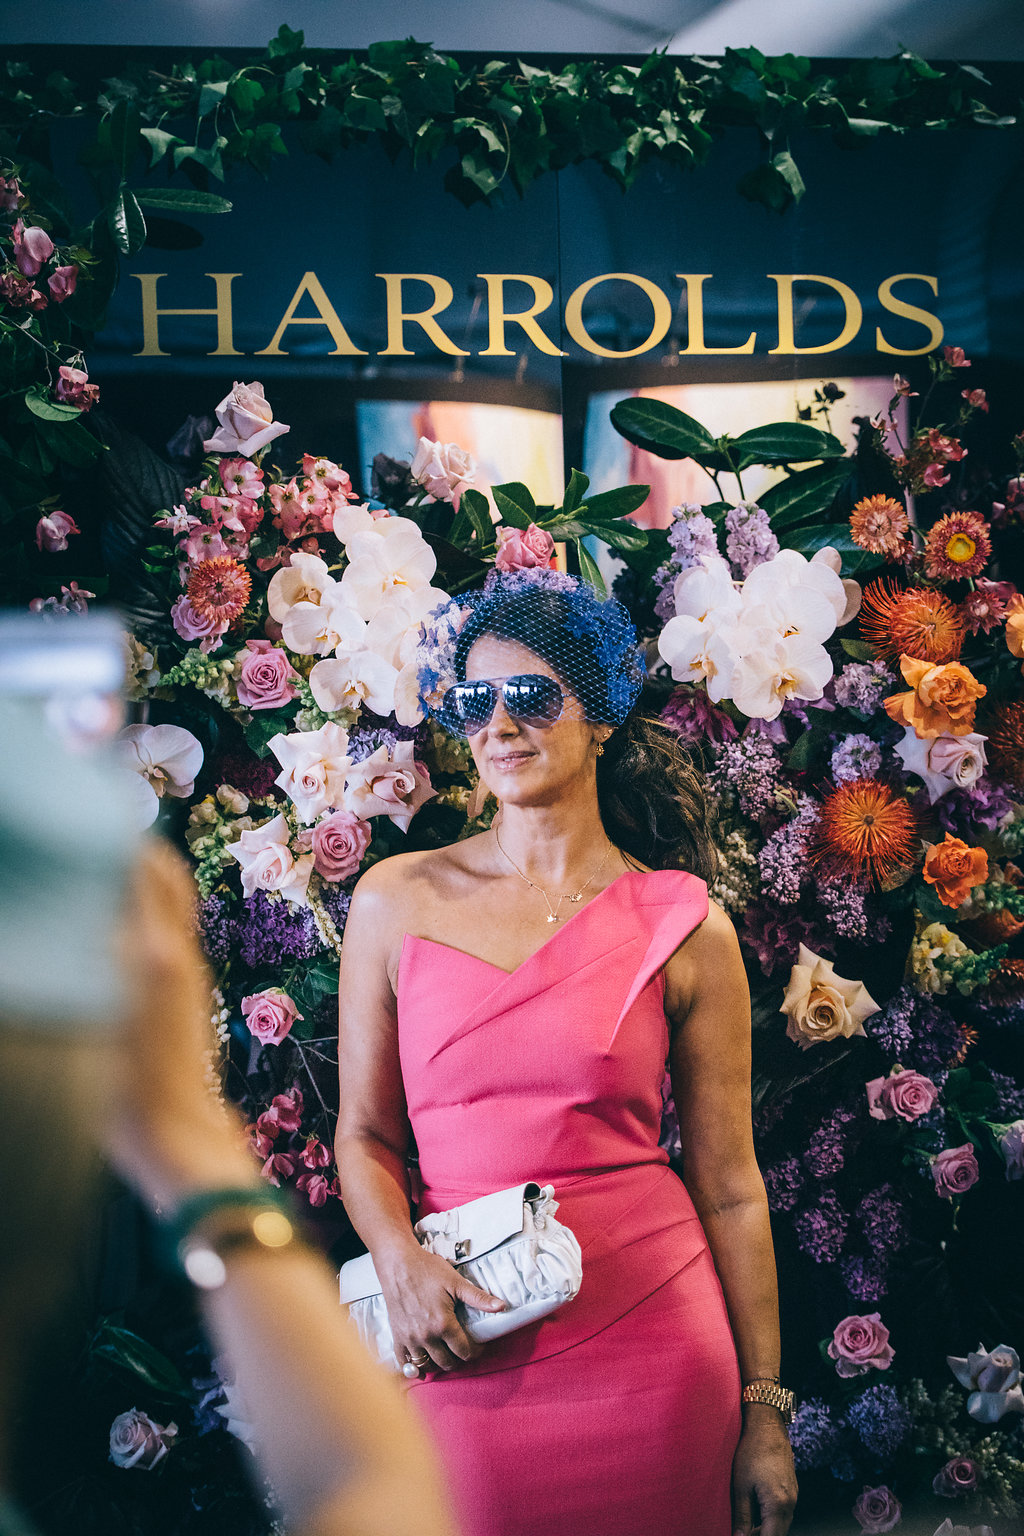 Harrolds fashion at Caulfield Cup raceday for spring racing carnival in Melbourne